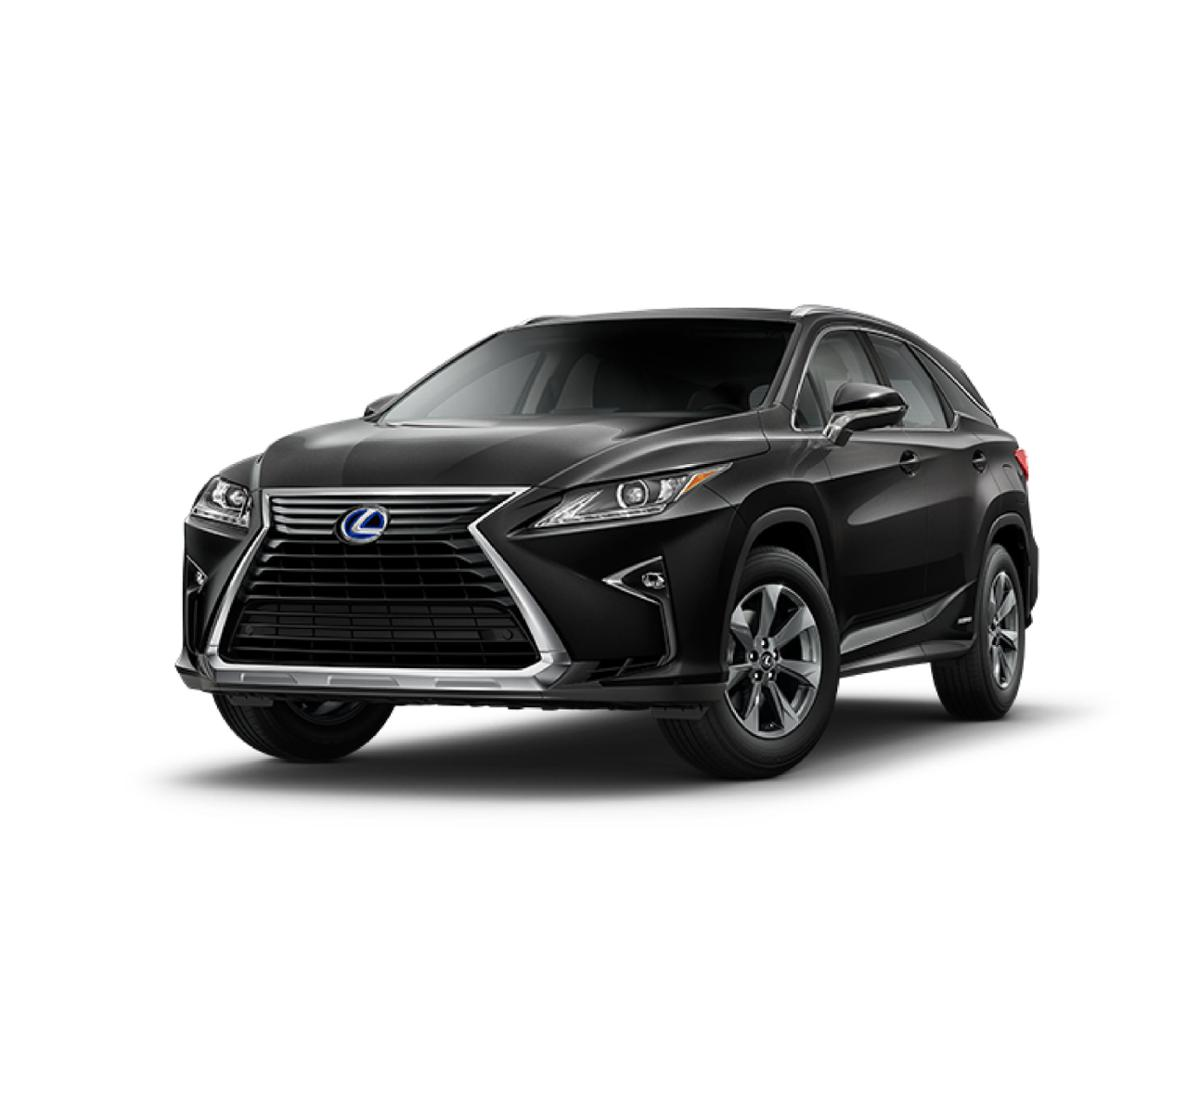 2018 Lexus RX 450hL Vehicle Photo in Fort Worth, TX 76132